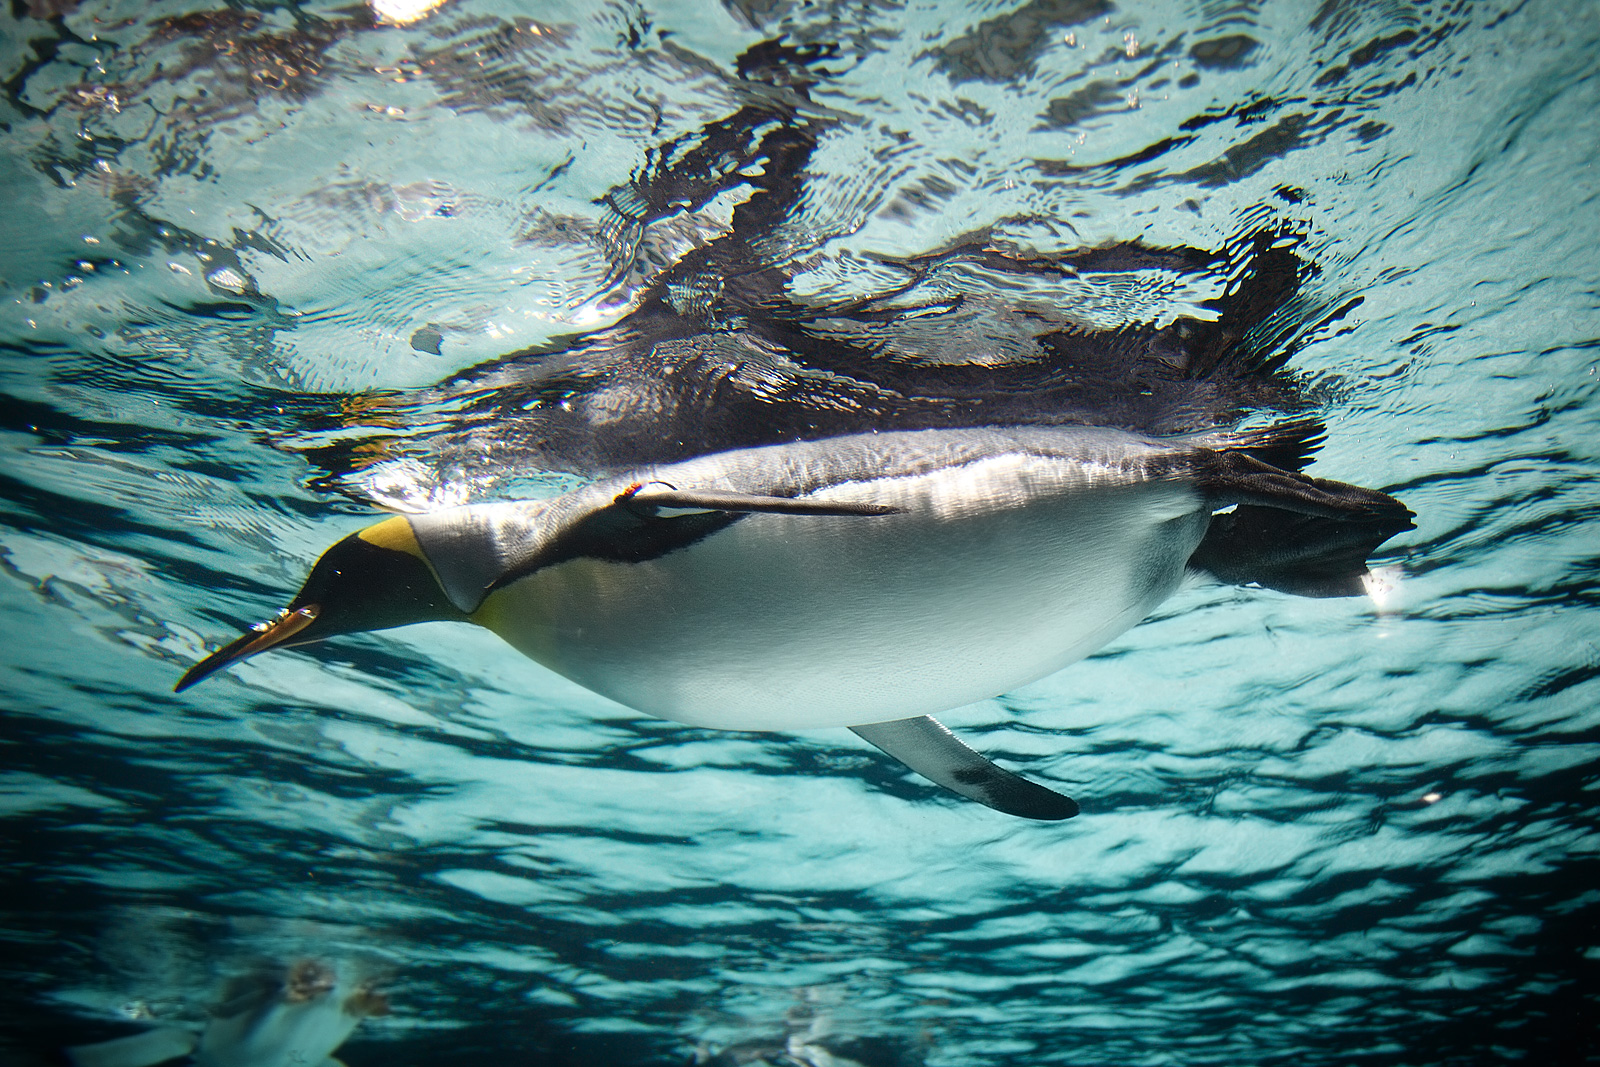 File:King Penguin in water Feb09.jpg - Wikimedia Commons